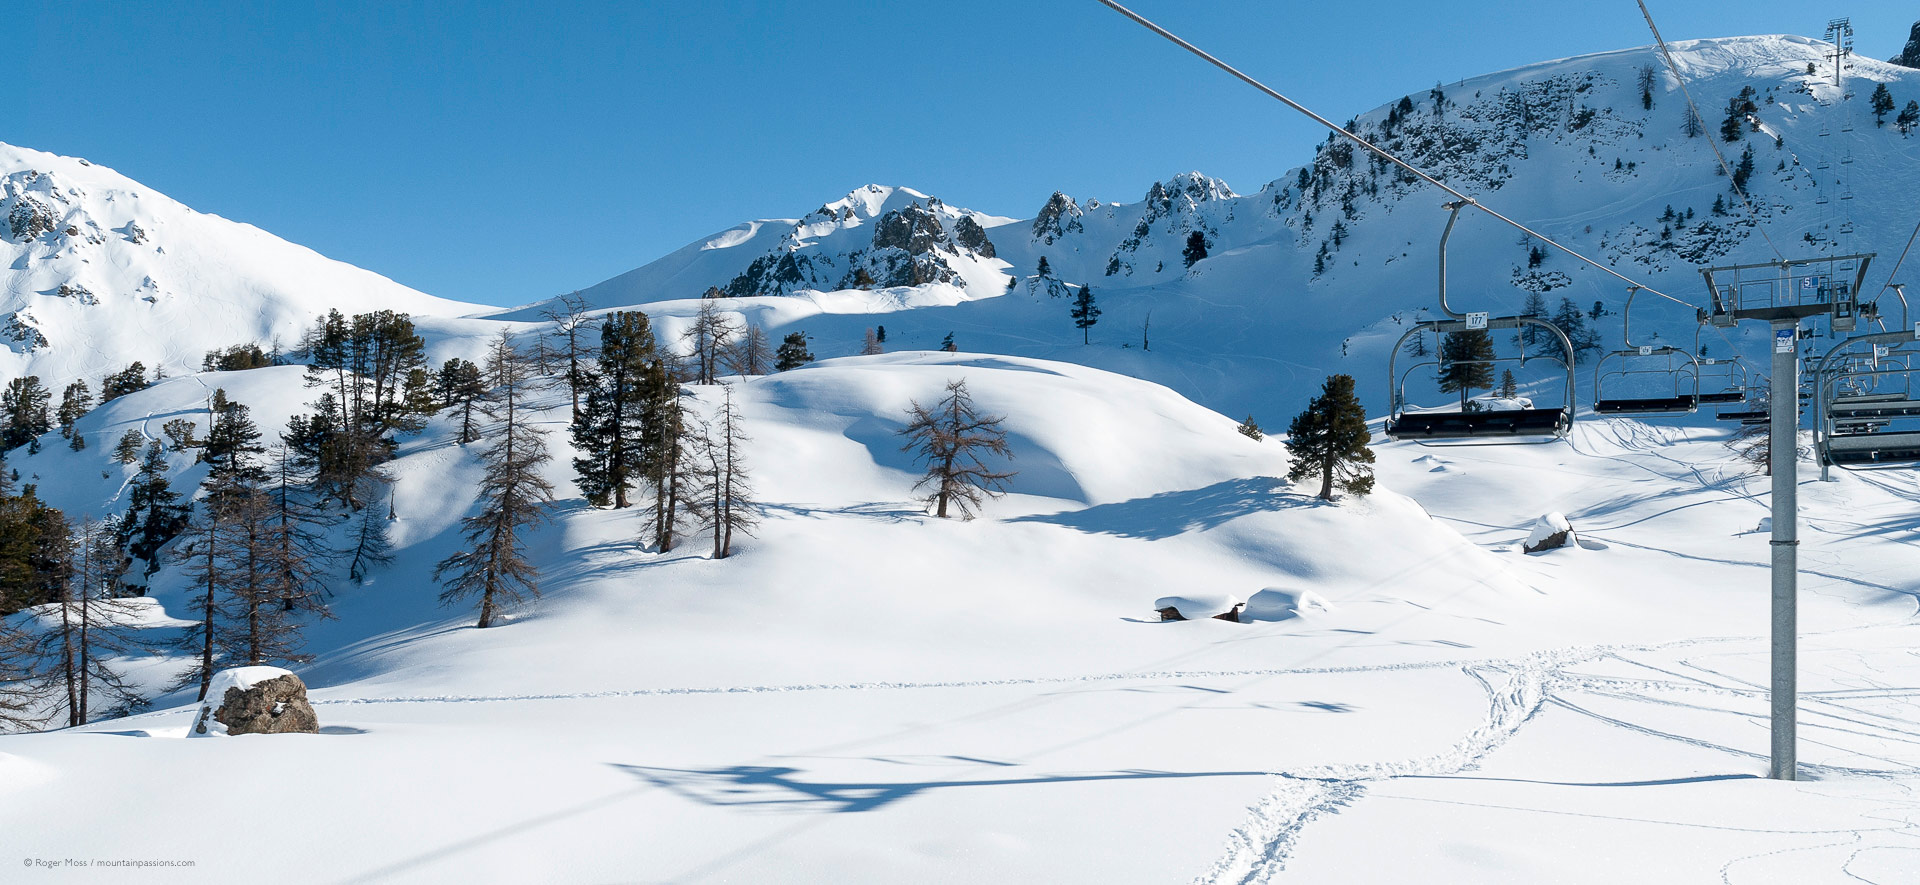 Fresh snow and natural mountain scenery seen from ski lift